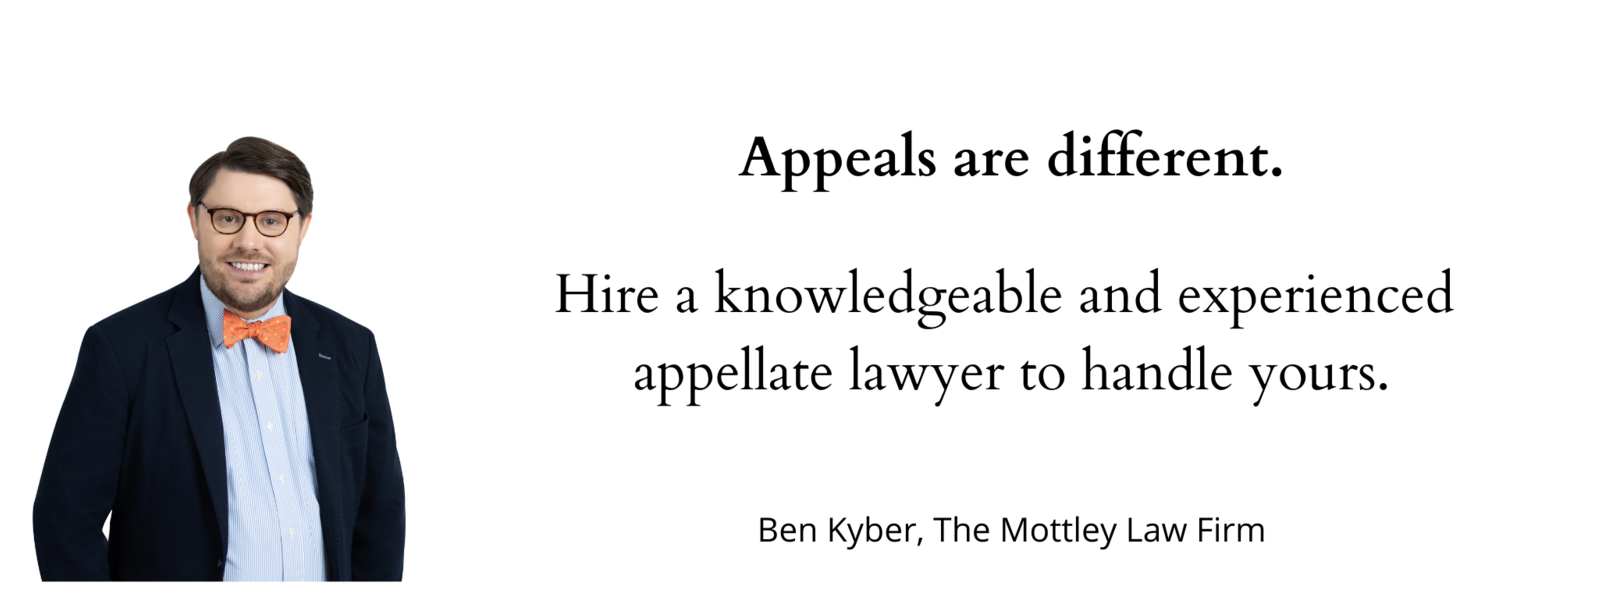 Knowledgeable appellate lawyer located in Richmond VA